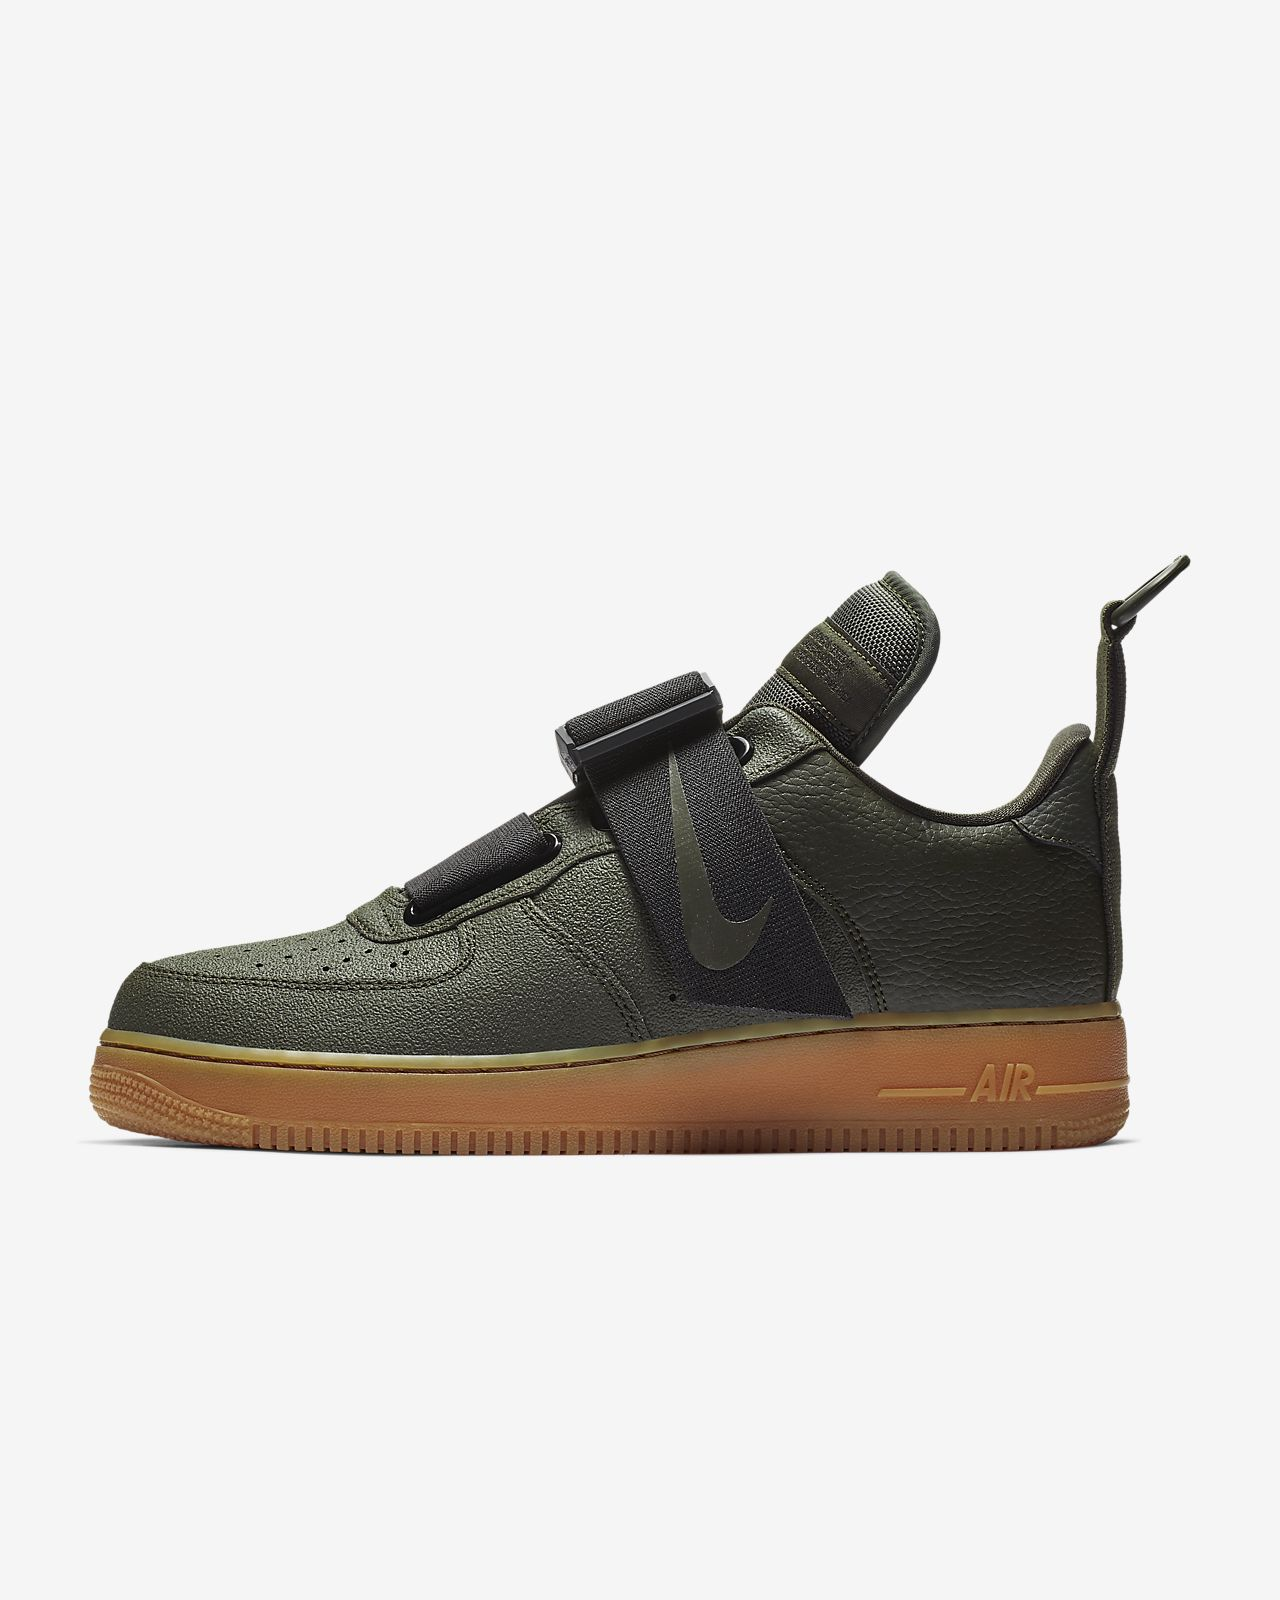 official photos 2963f 05998 ... Calzado para hombre Nike Air Force 1 Utility